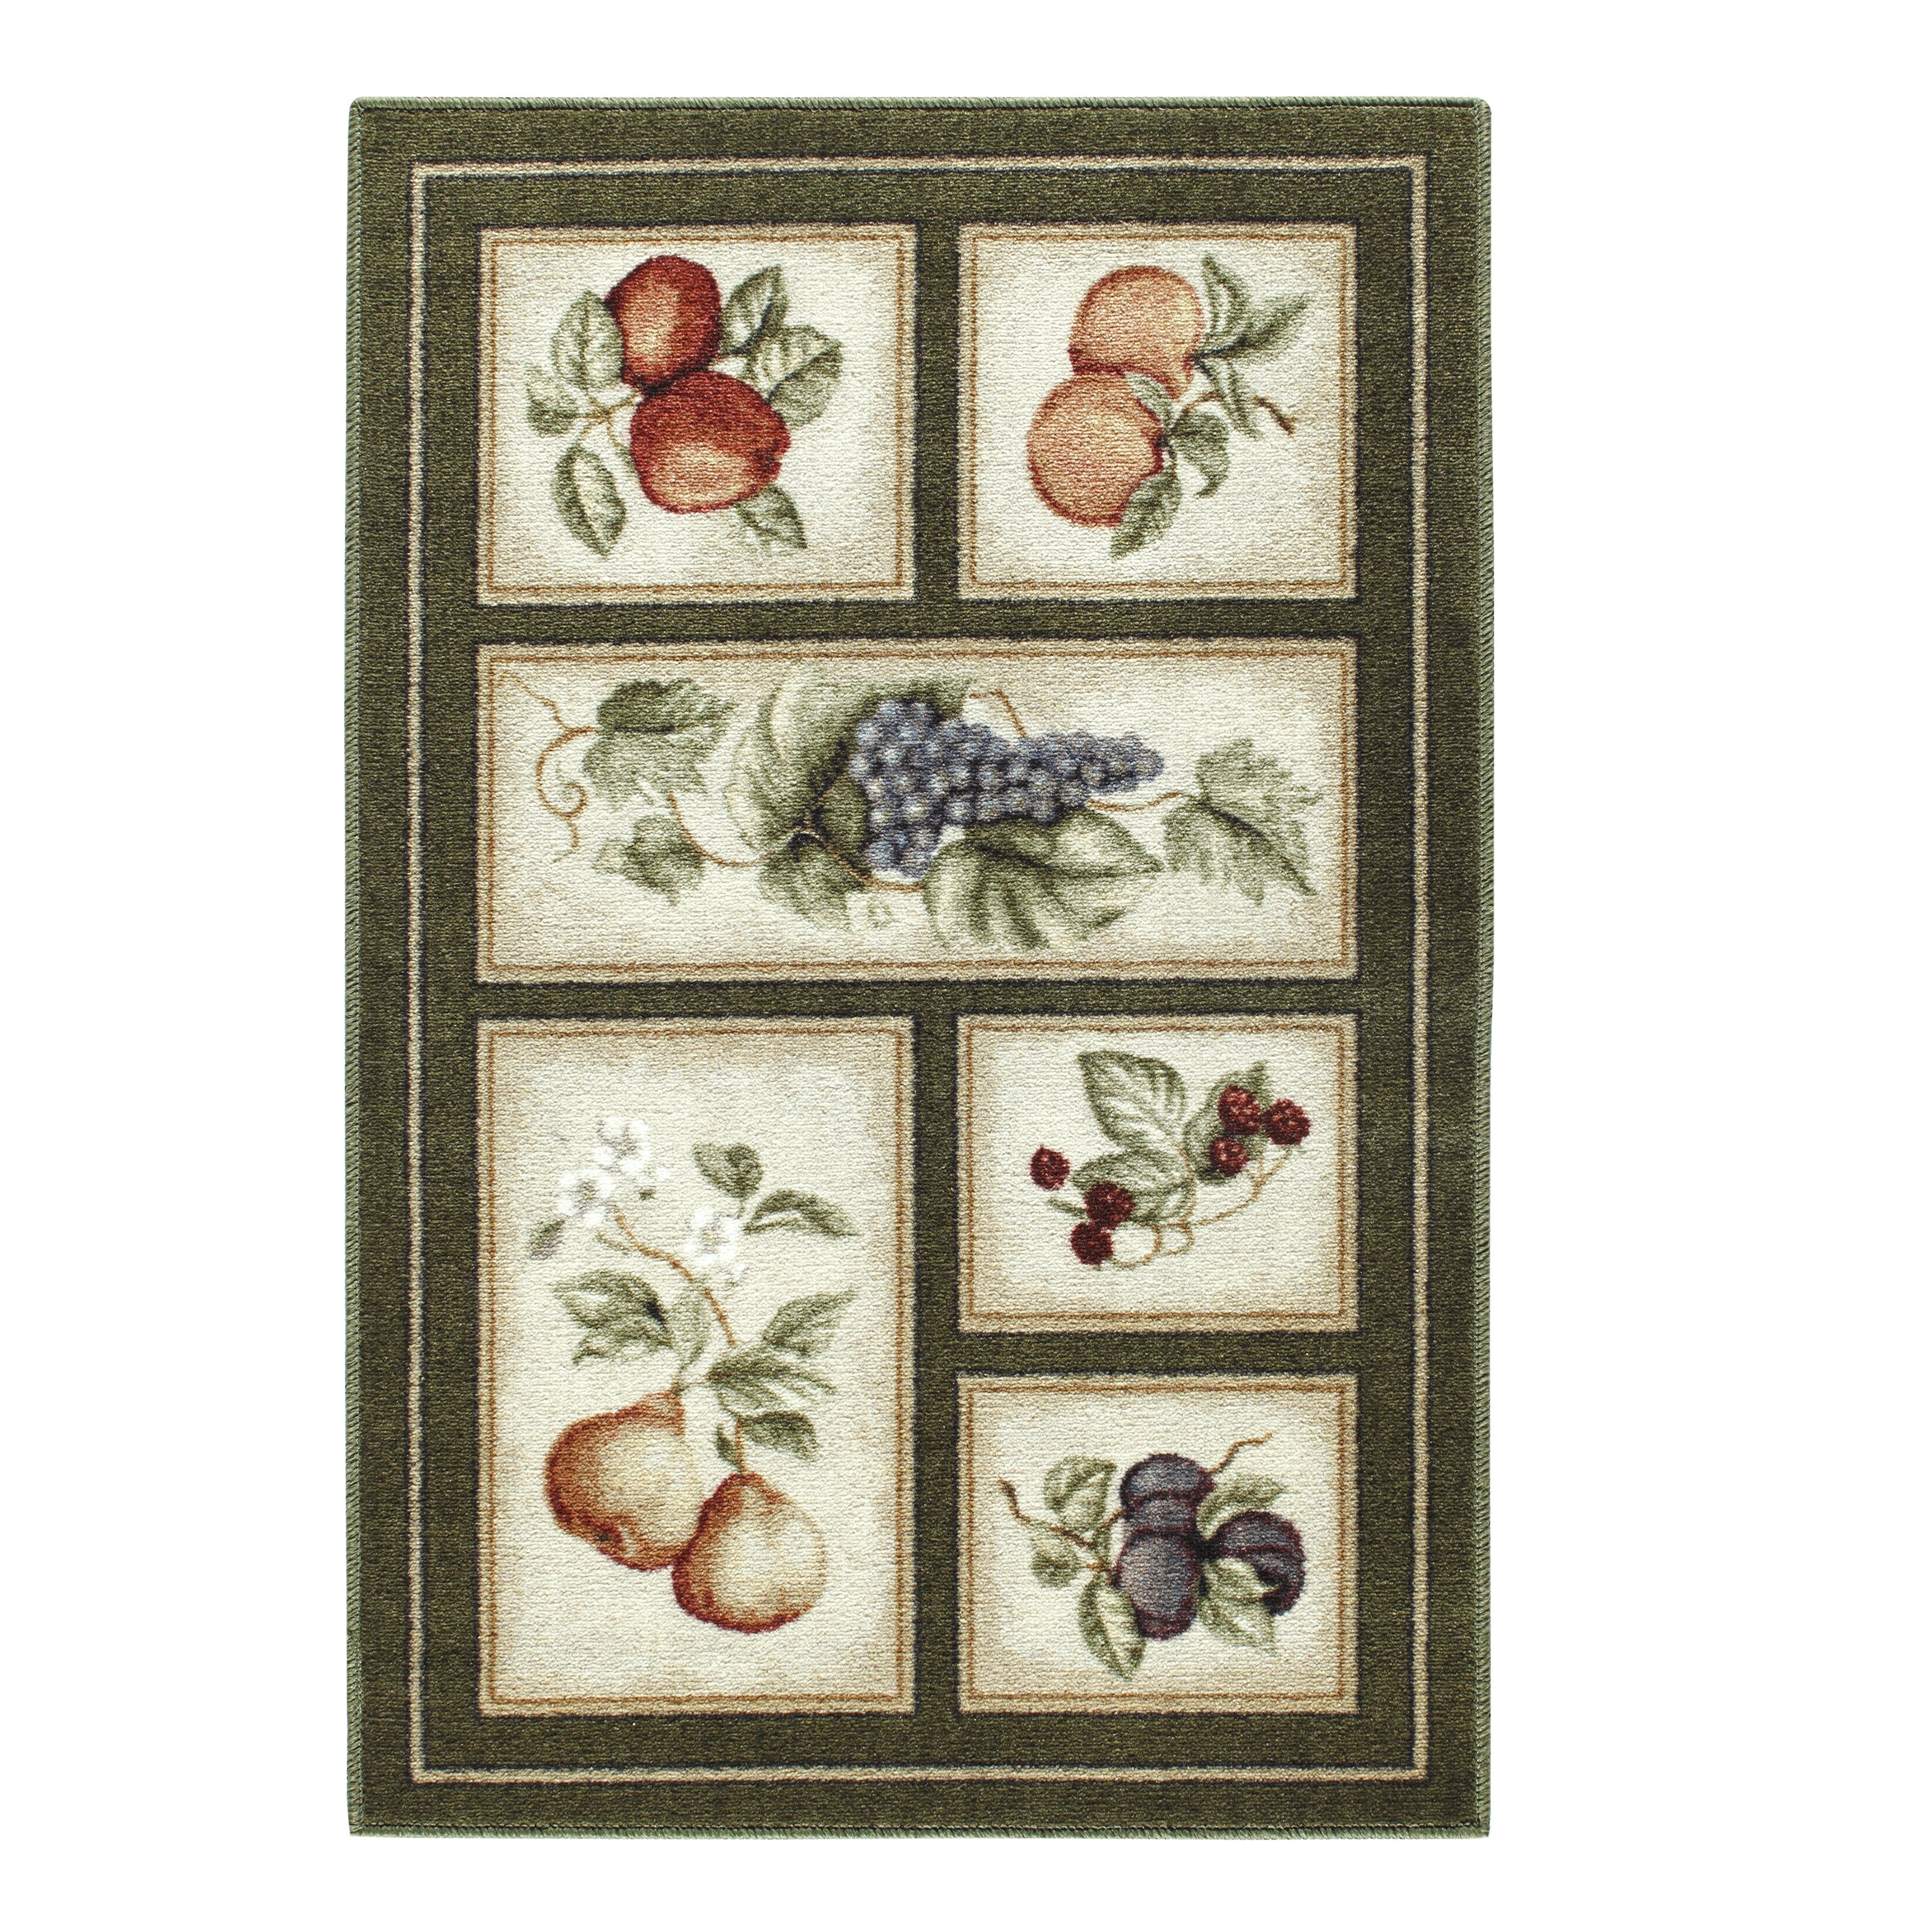 Jcpenney Area Rugs Brumlow Mills Eden's Bounty Olive Green Area Rug & Reviews ...